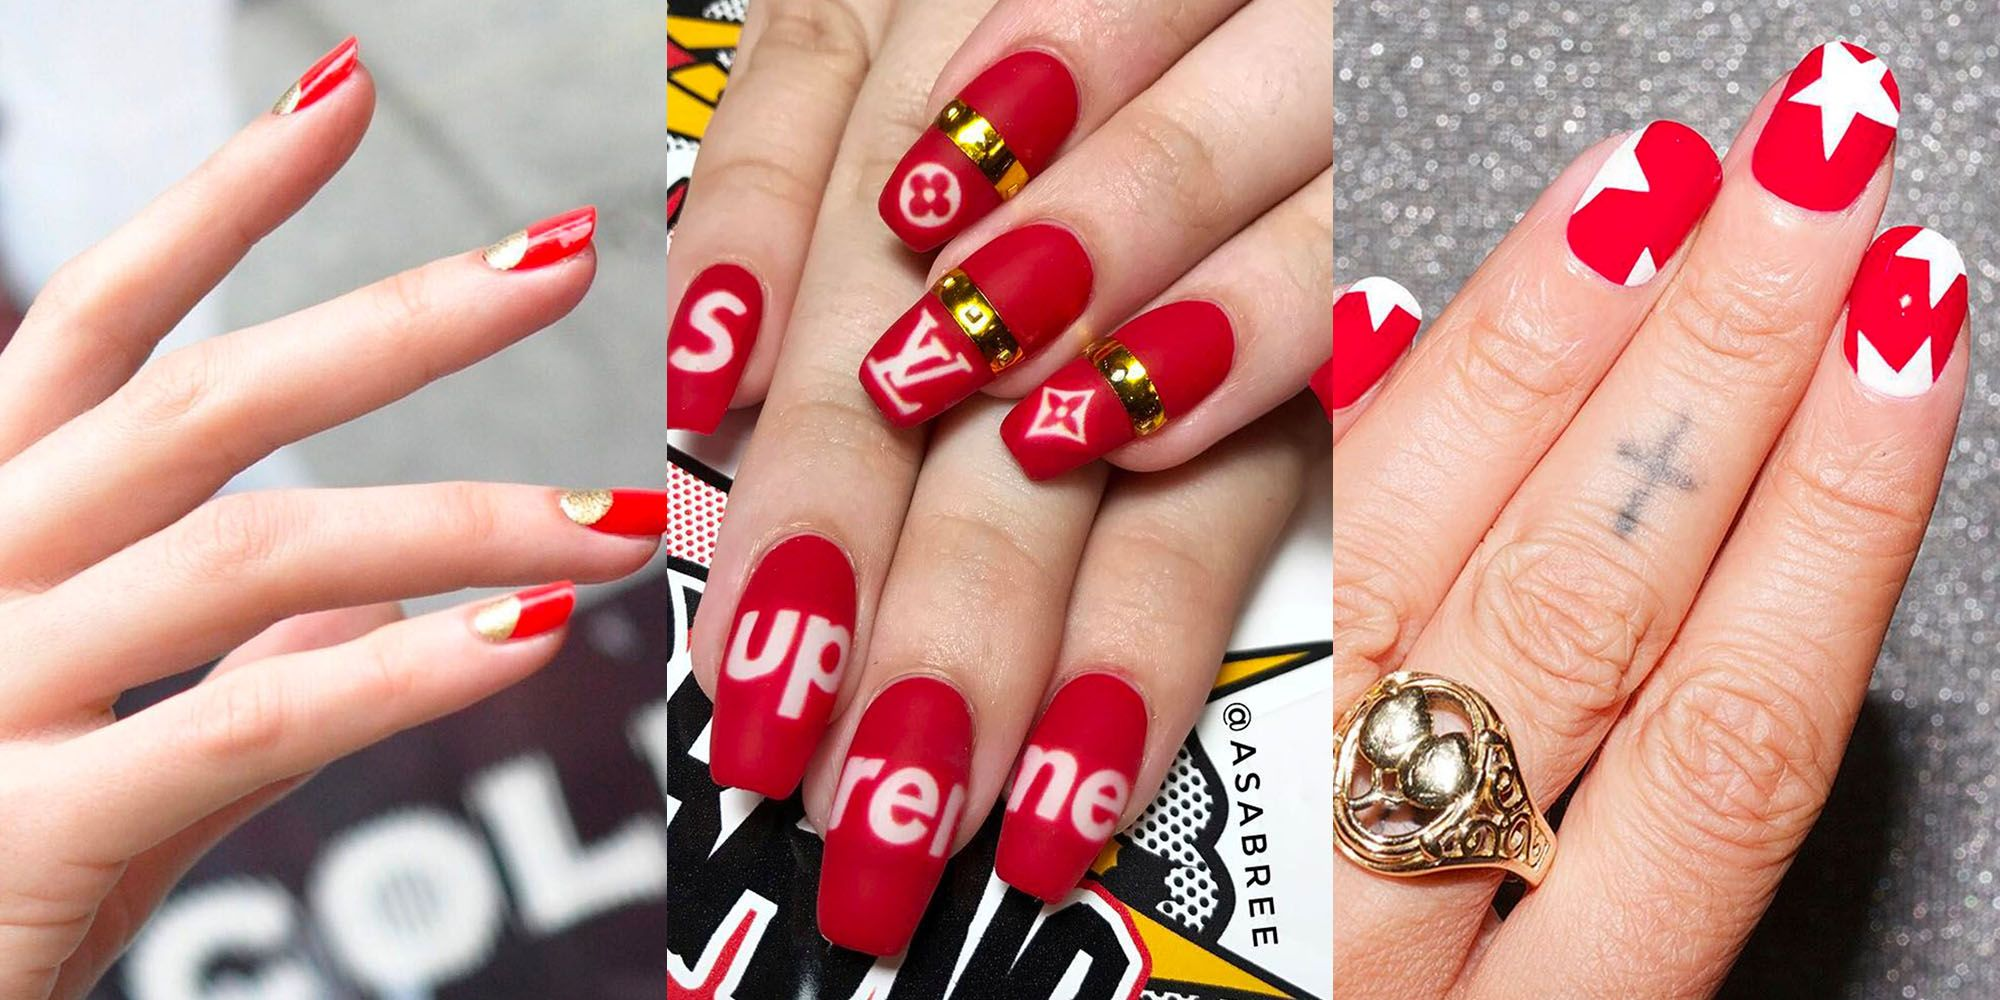 19 Easy Red Nail Designs , Cute Nail Art Ideas for a Red